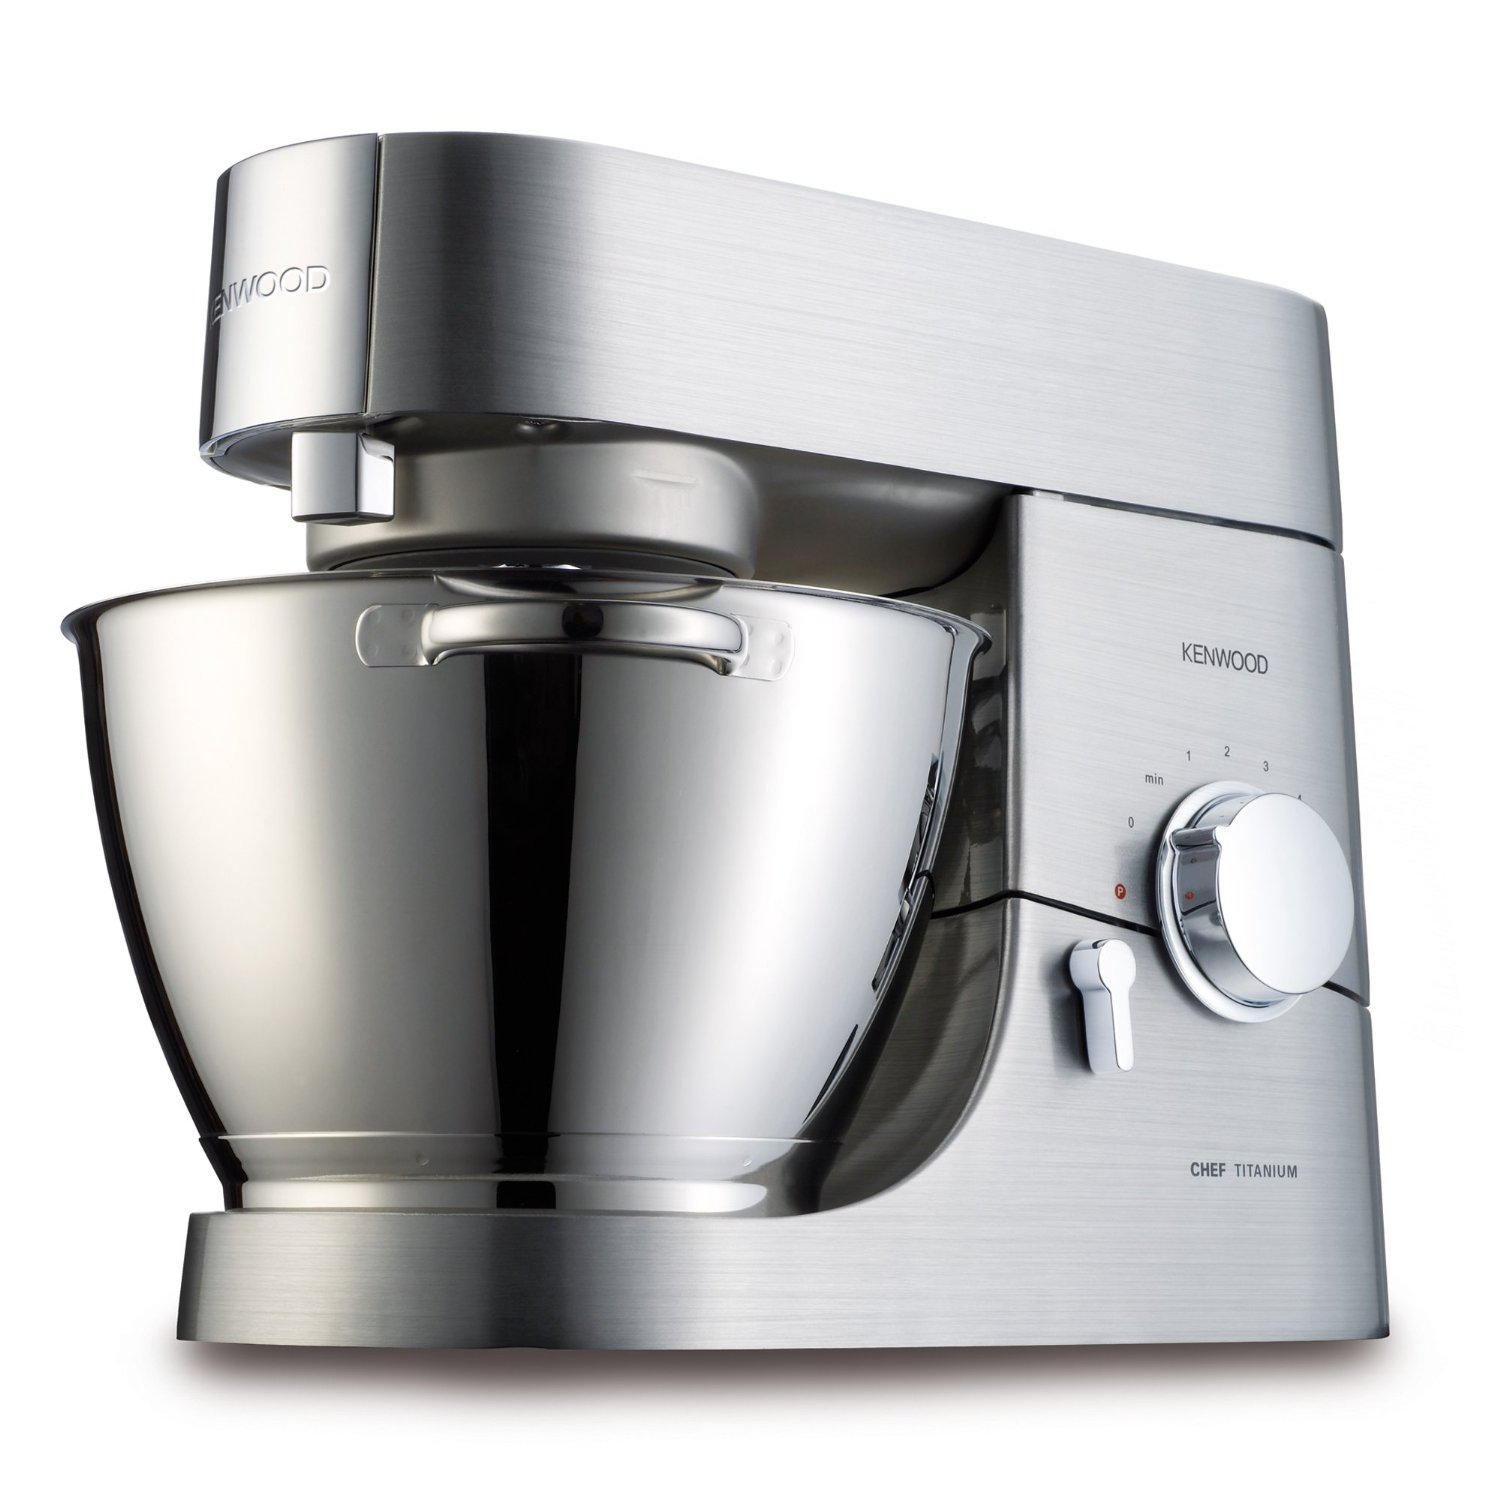 Test du robot de cuisine multi fonction kenwood kmc050 for Cuisson vapeur kenwood cooking chef